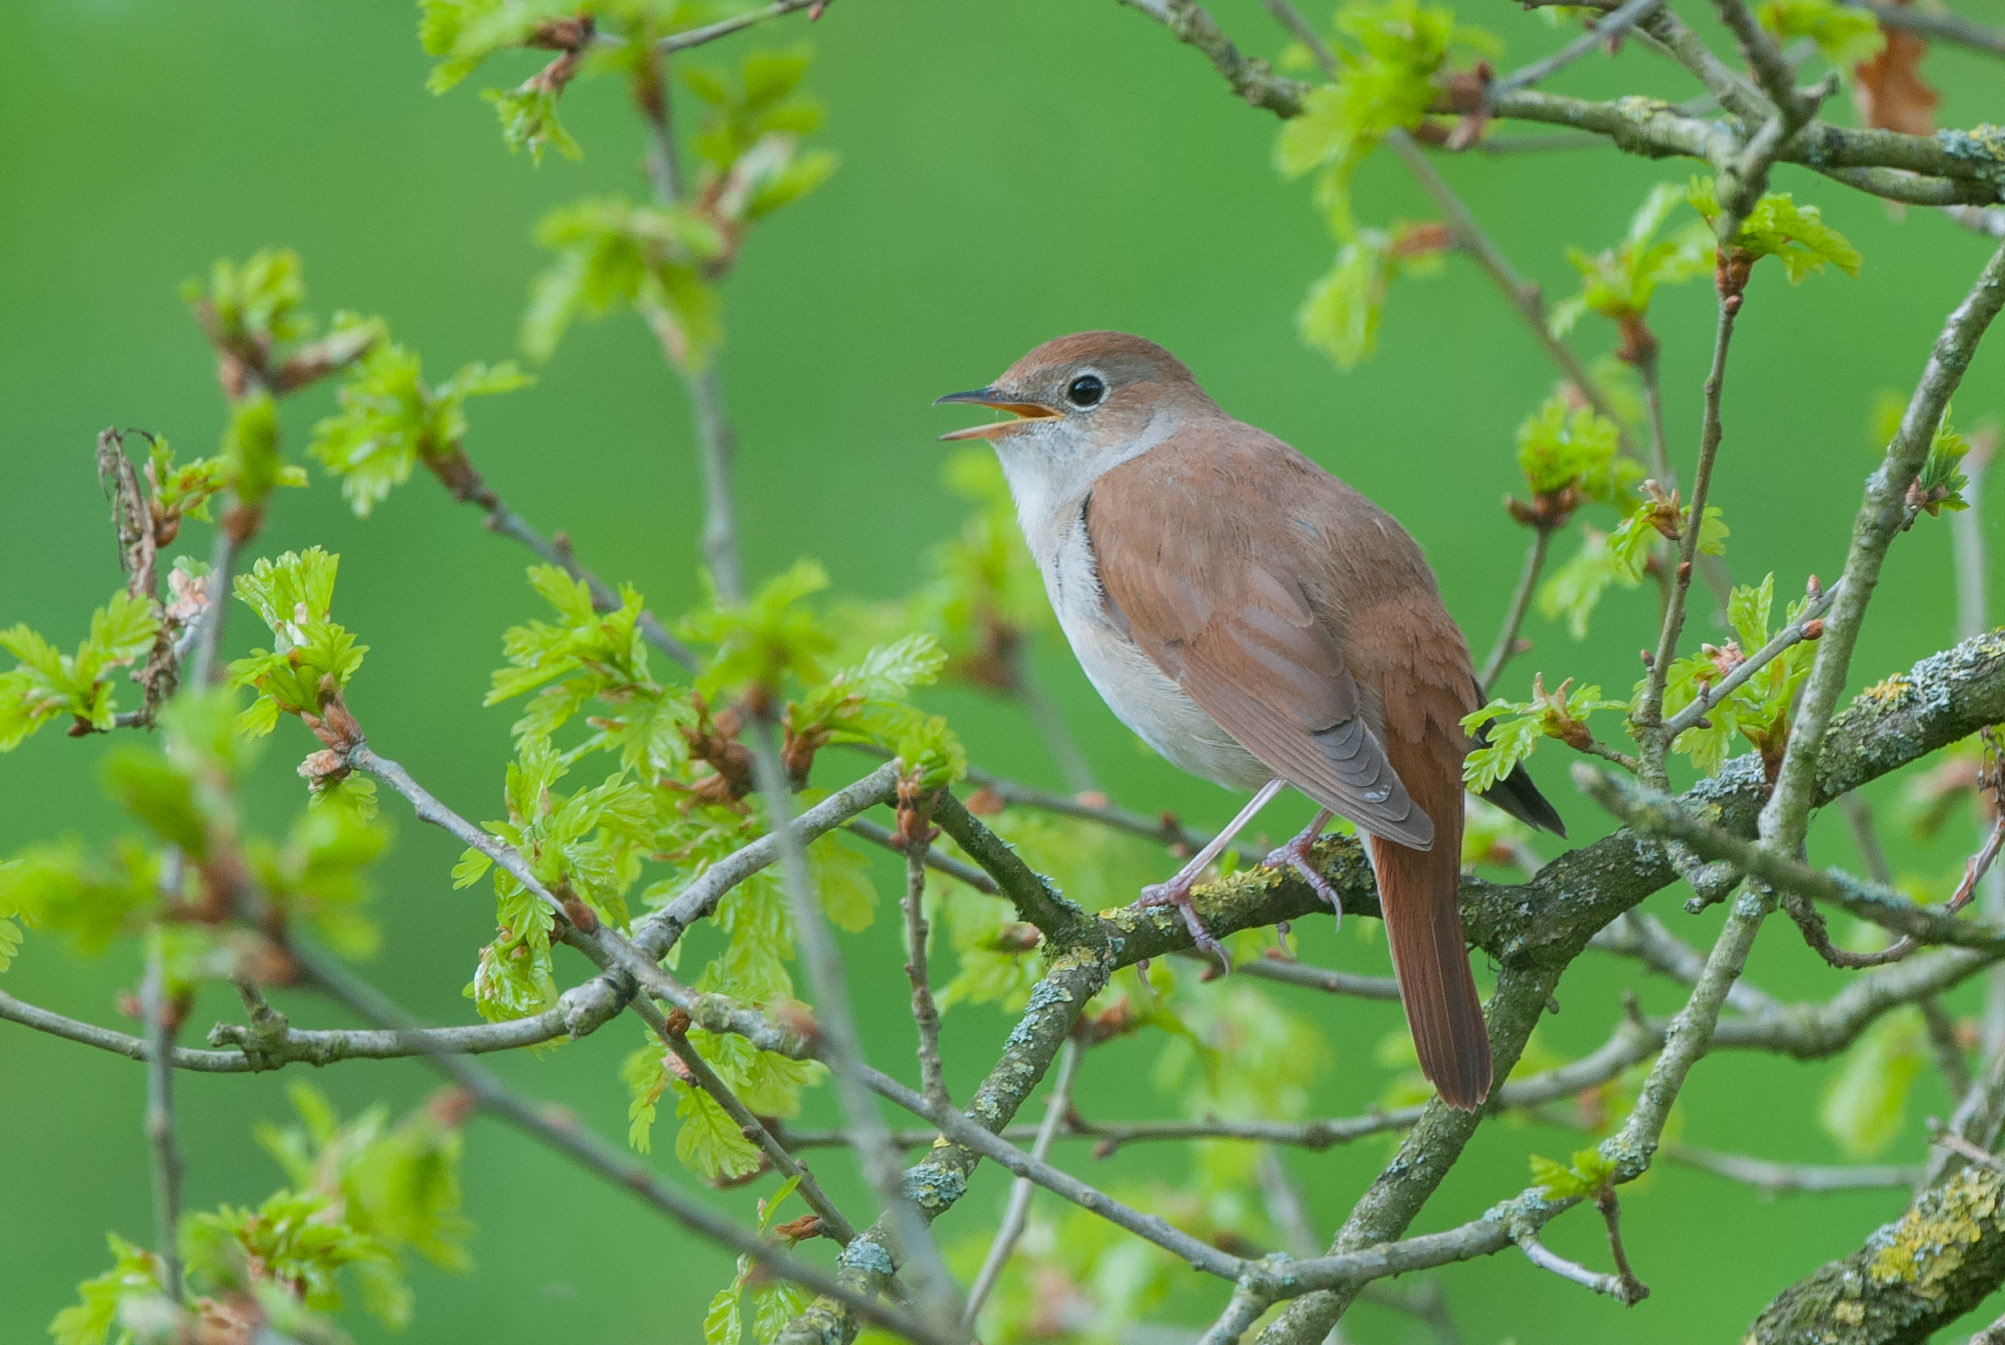 I had a couple of trips out to Lincolnshire for the nightingales and they didn't disappoint. The dawn chorus led by the nightingales was magical as was watching a female nest building within feet of the footpath!